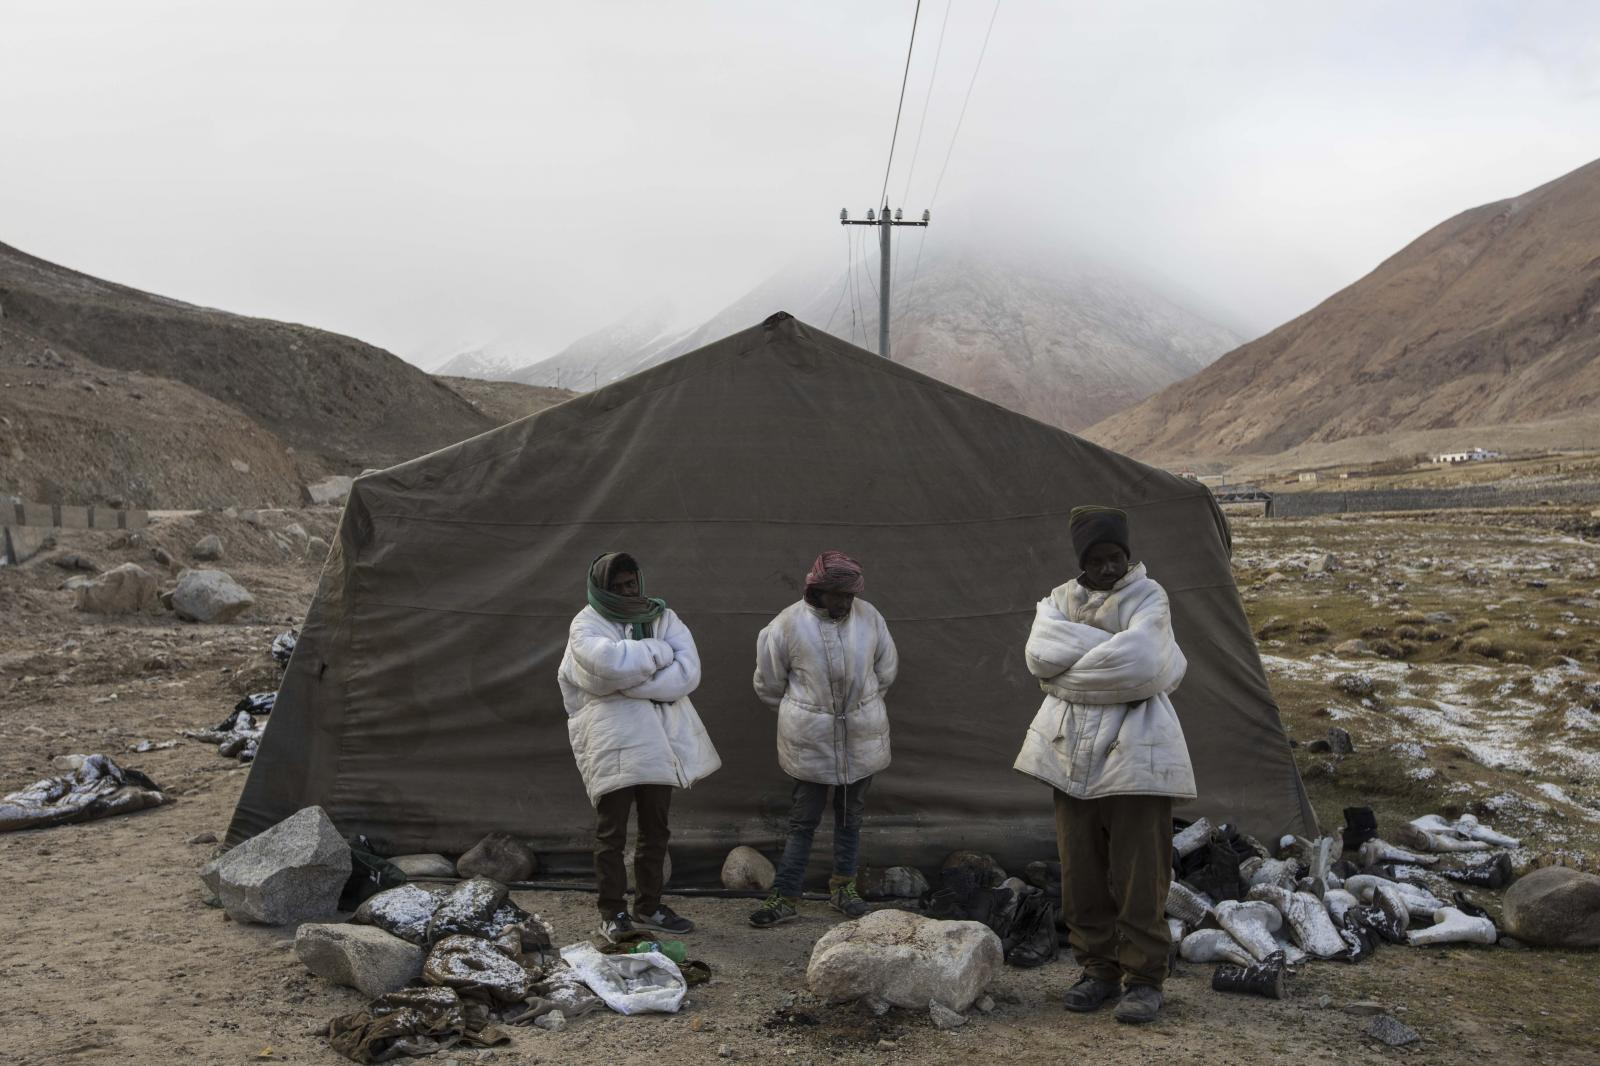 (L-R) Tej Narayan, 30, Rajesh Manji, 28, and Sunil Tutu, 33, road maintenance workers from Jharkhand state, wait for transportation to their work site near Tangtse village in northern India's Ladakh region.